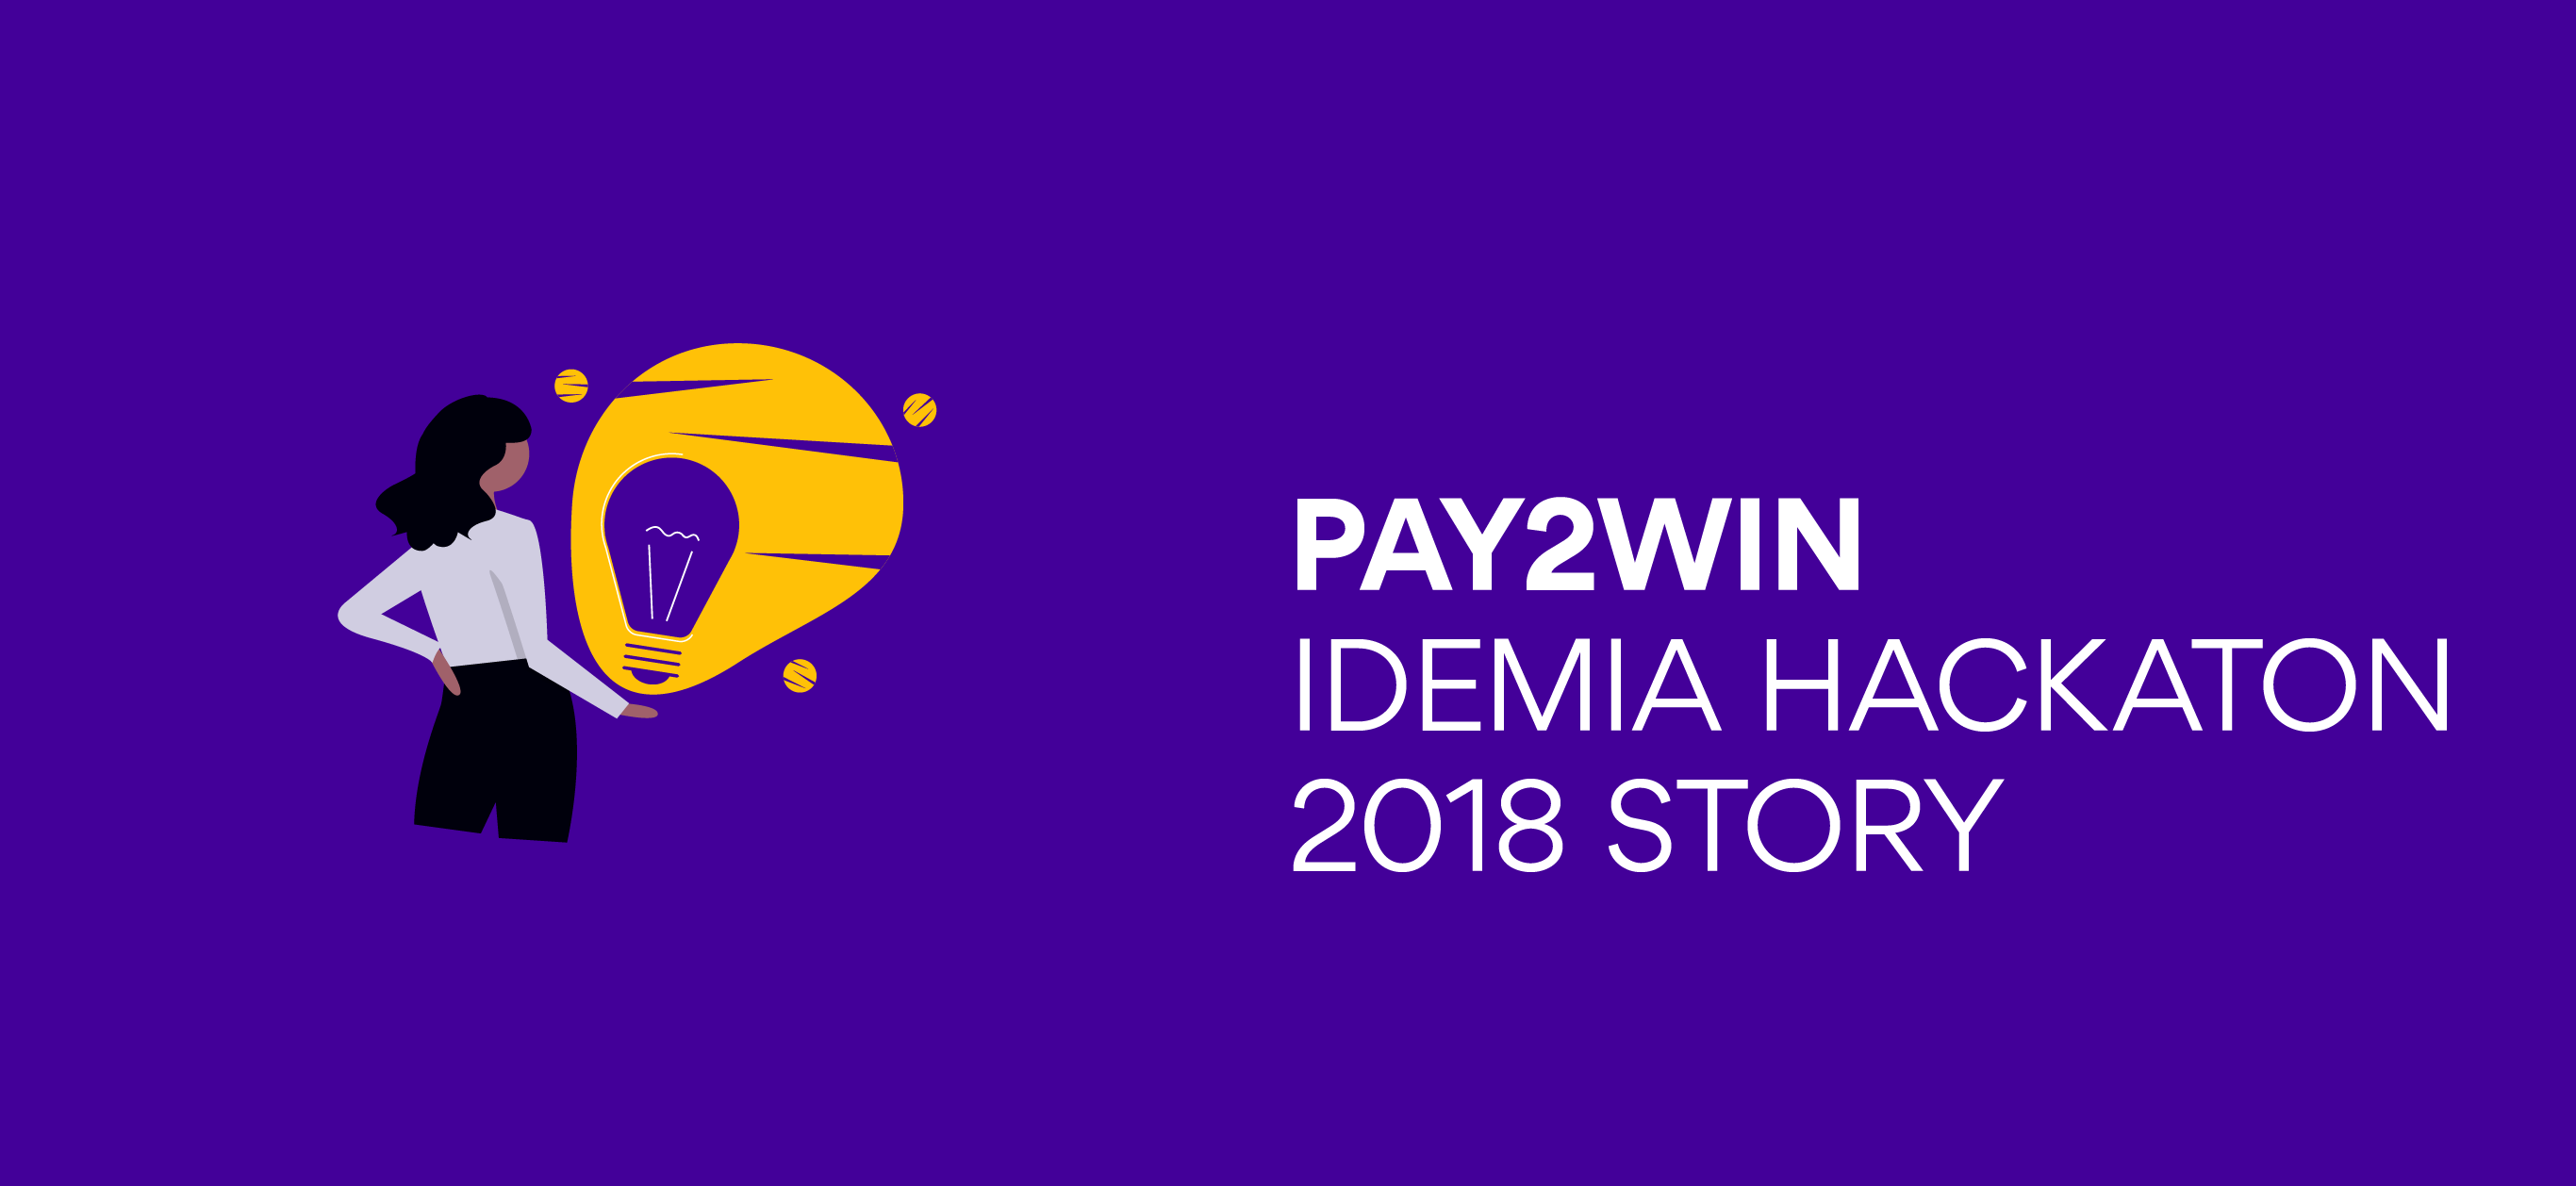 IDEMIA Hackaton 2018 story – Pay2Win